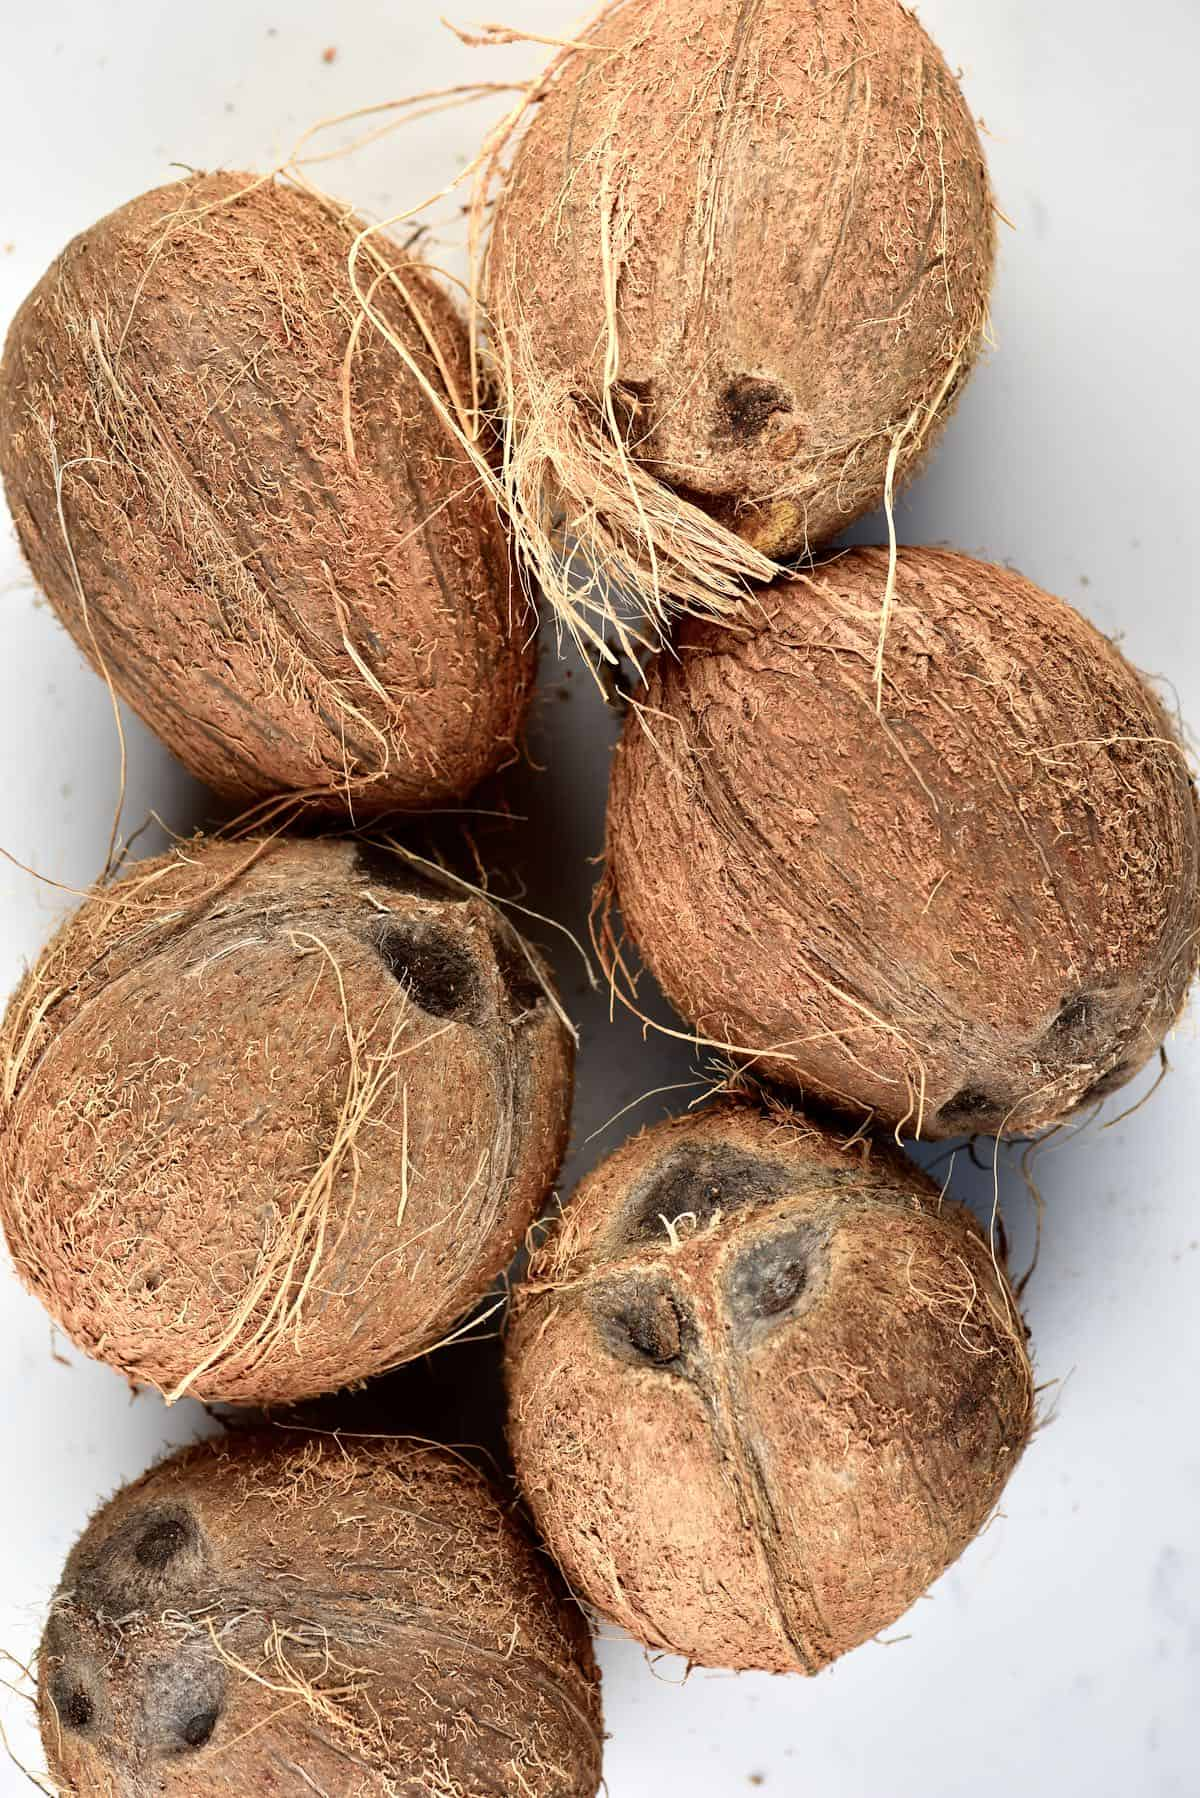 6 coconuts on a flat surface